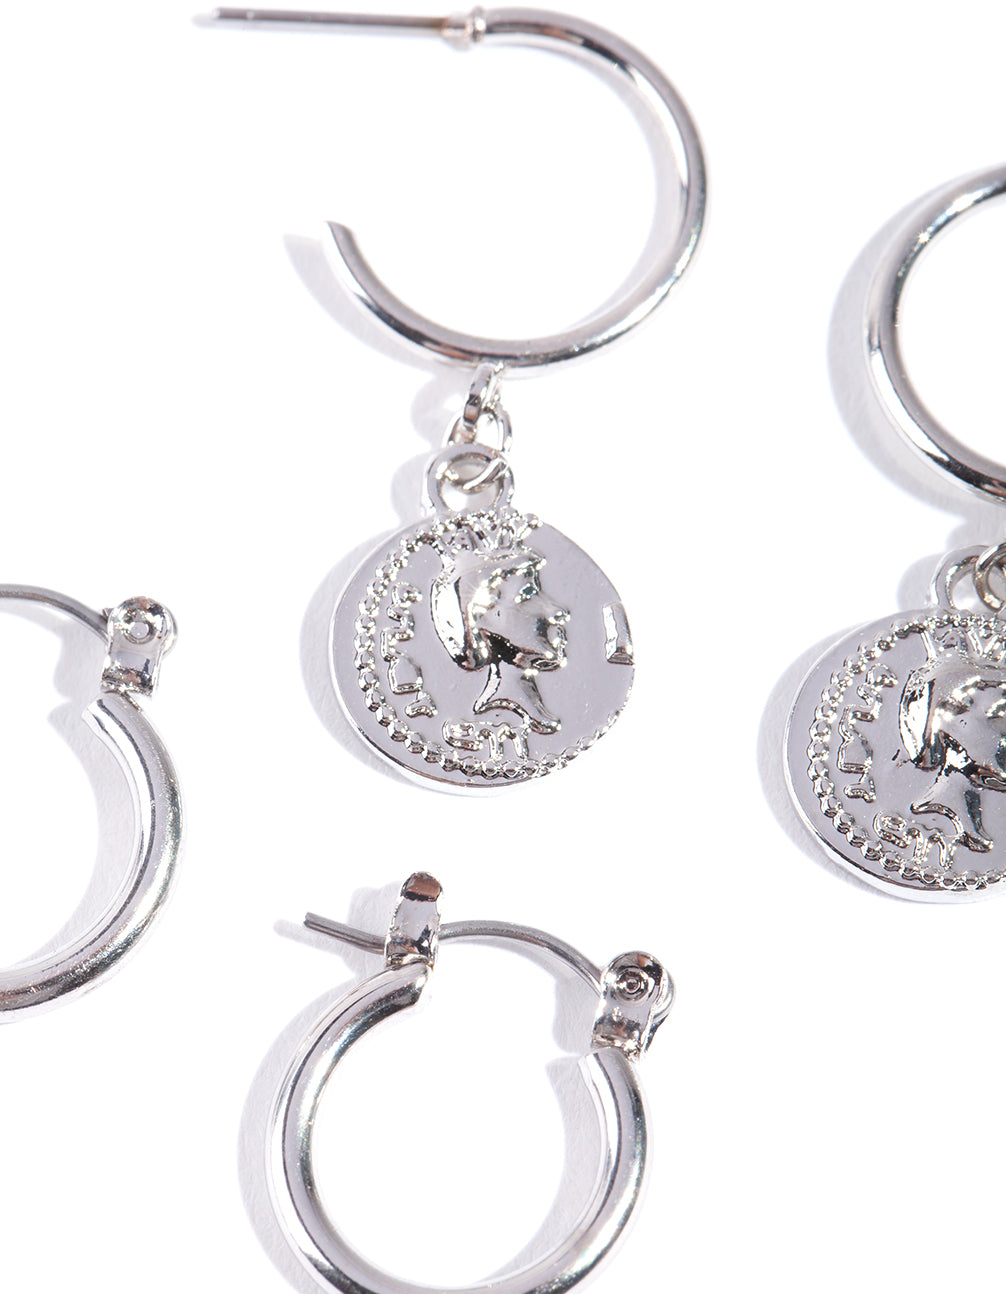 Rhodium Coin Charm Hoop Earring 2 Pack